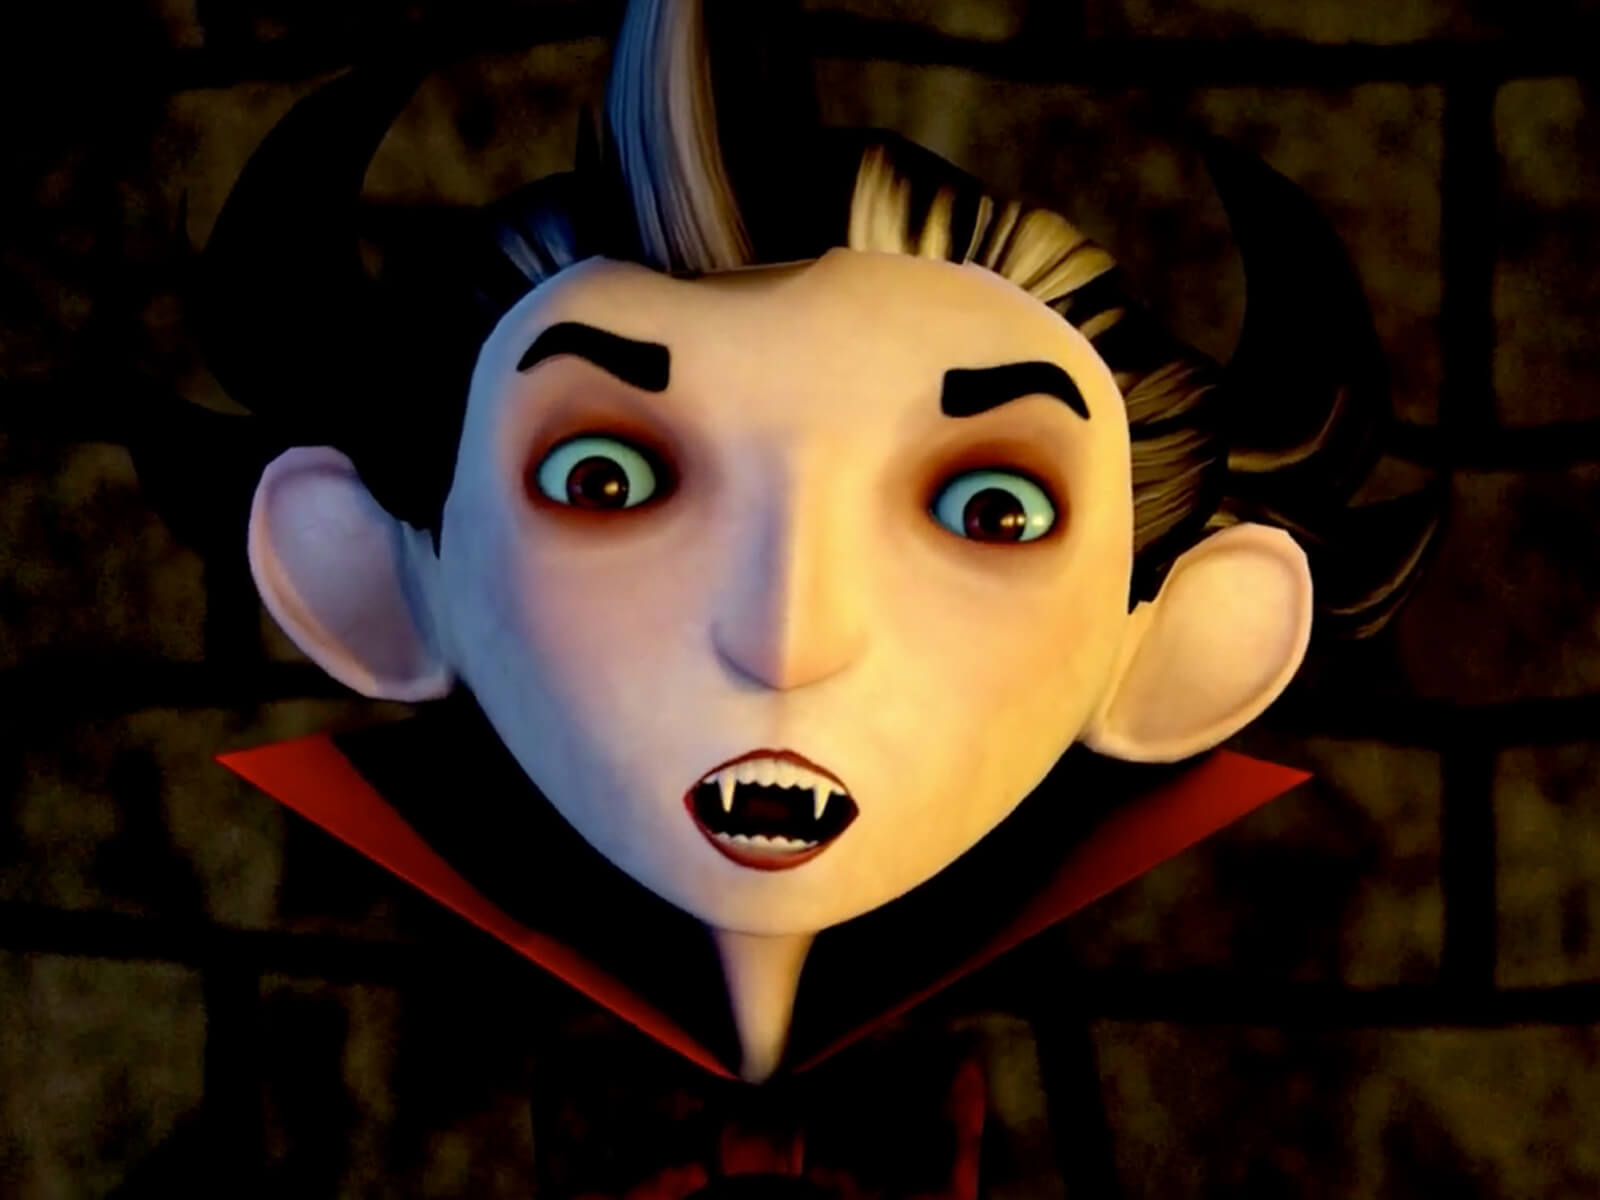 Close-up shot of a 3D animated vampire with a pale face, fangs, and red collar